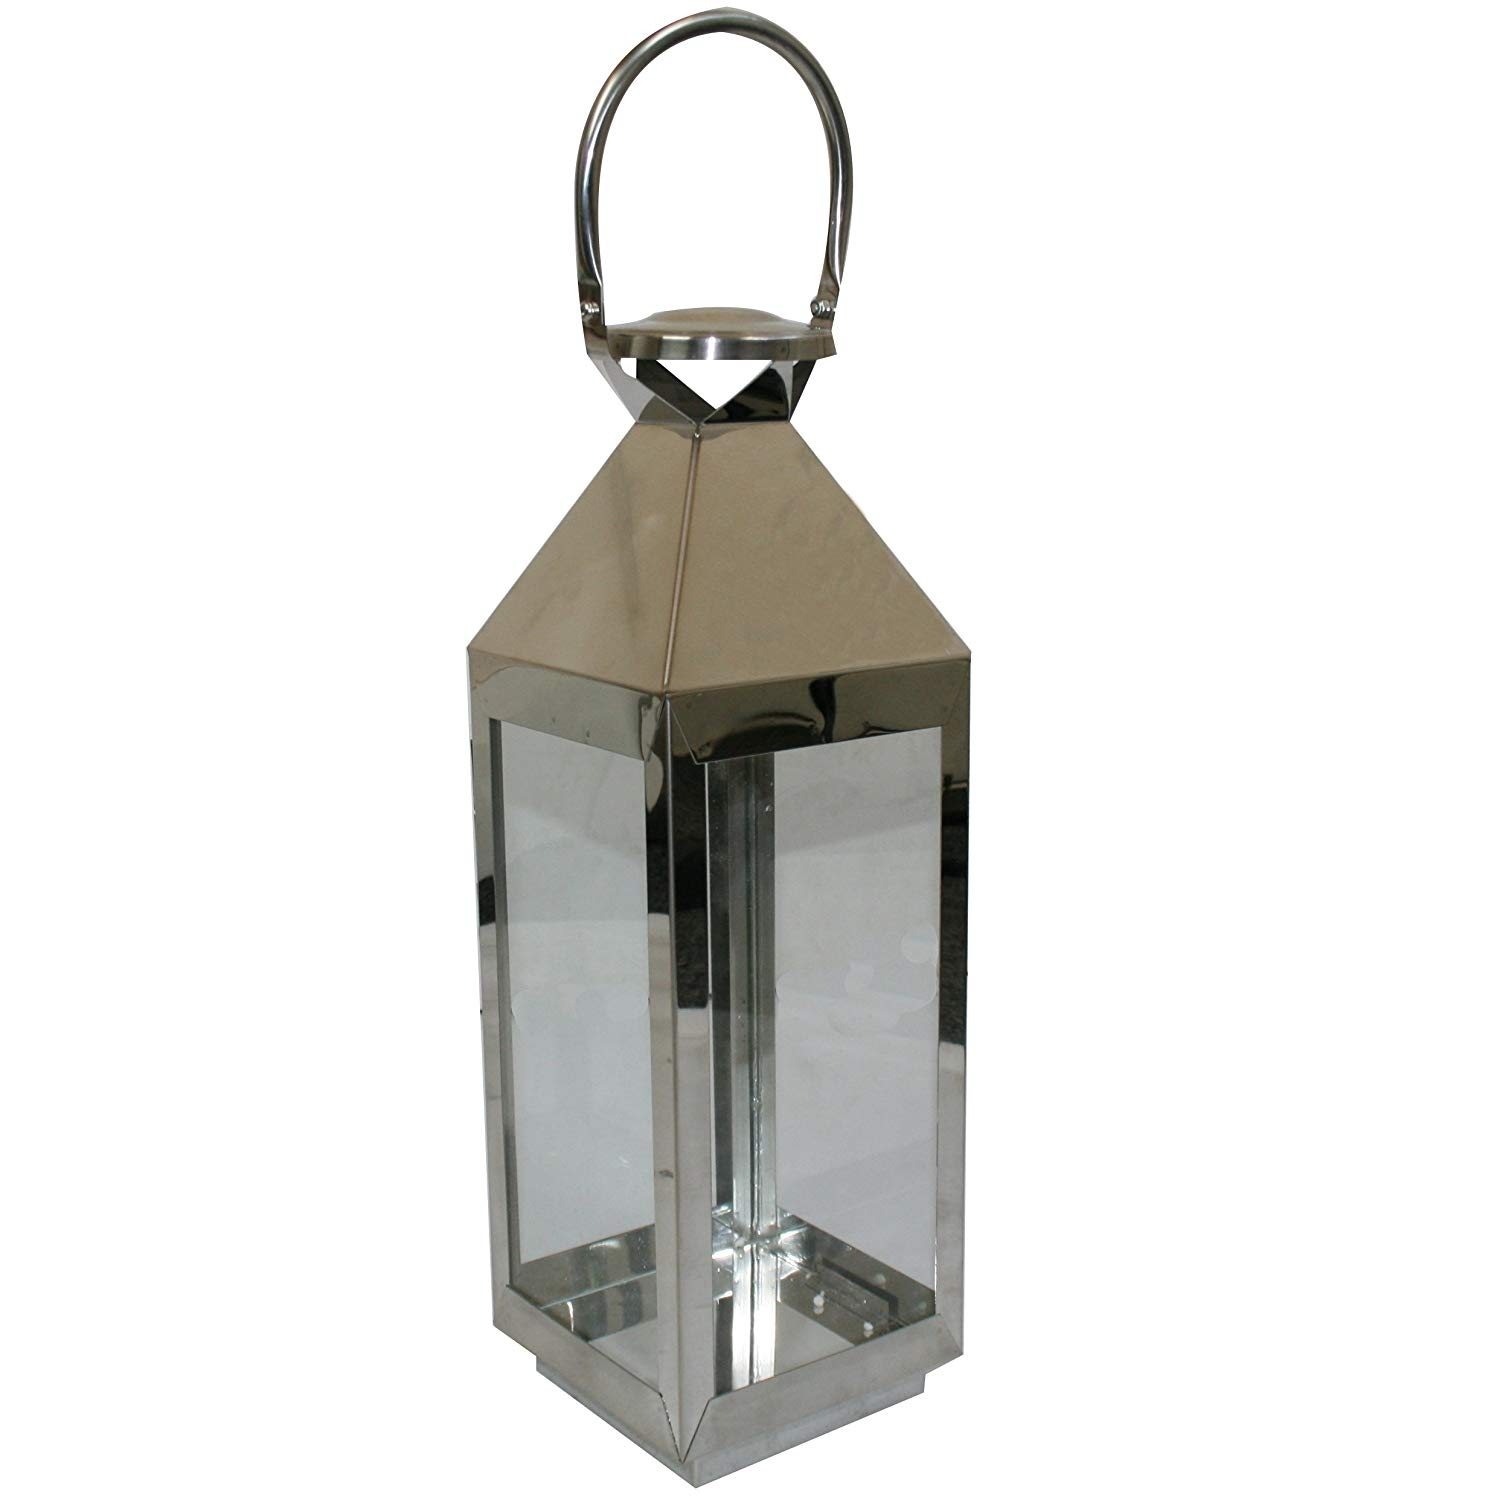 Jvl Pair Of Stainless Steel Hampton Indoor/outdoor Candle Light throughout Vaughan Outdoor Lanterns (Image 7 of 20)